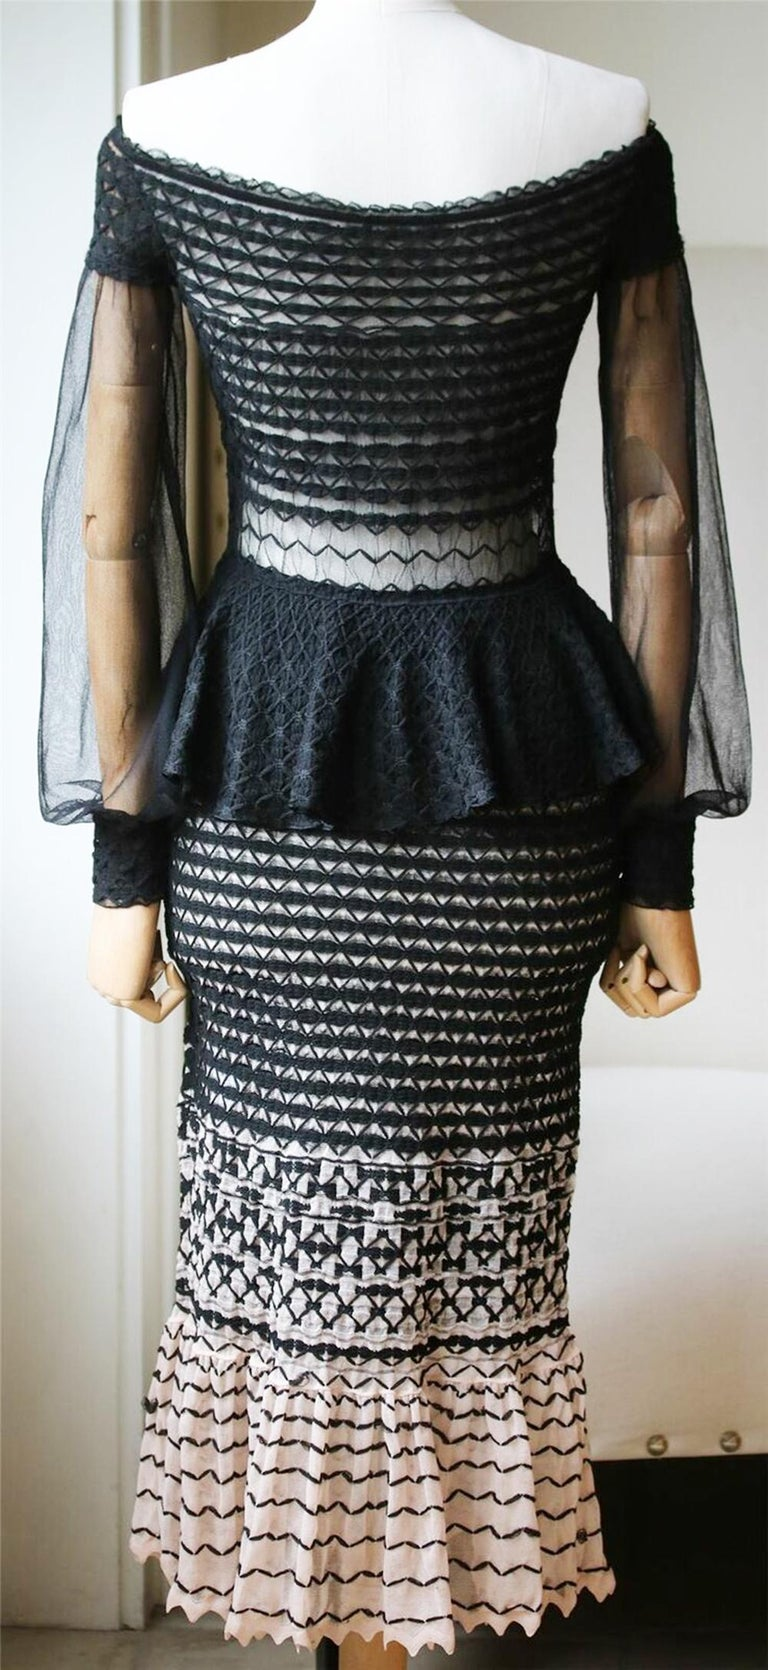 Women's Alexander McQueen Off-the-Shoulder Knitted Dress  For Sale